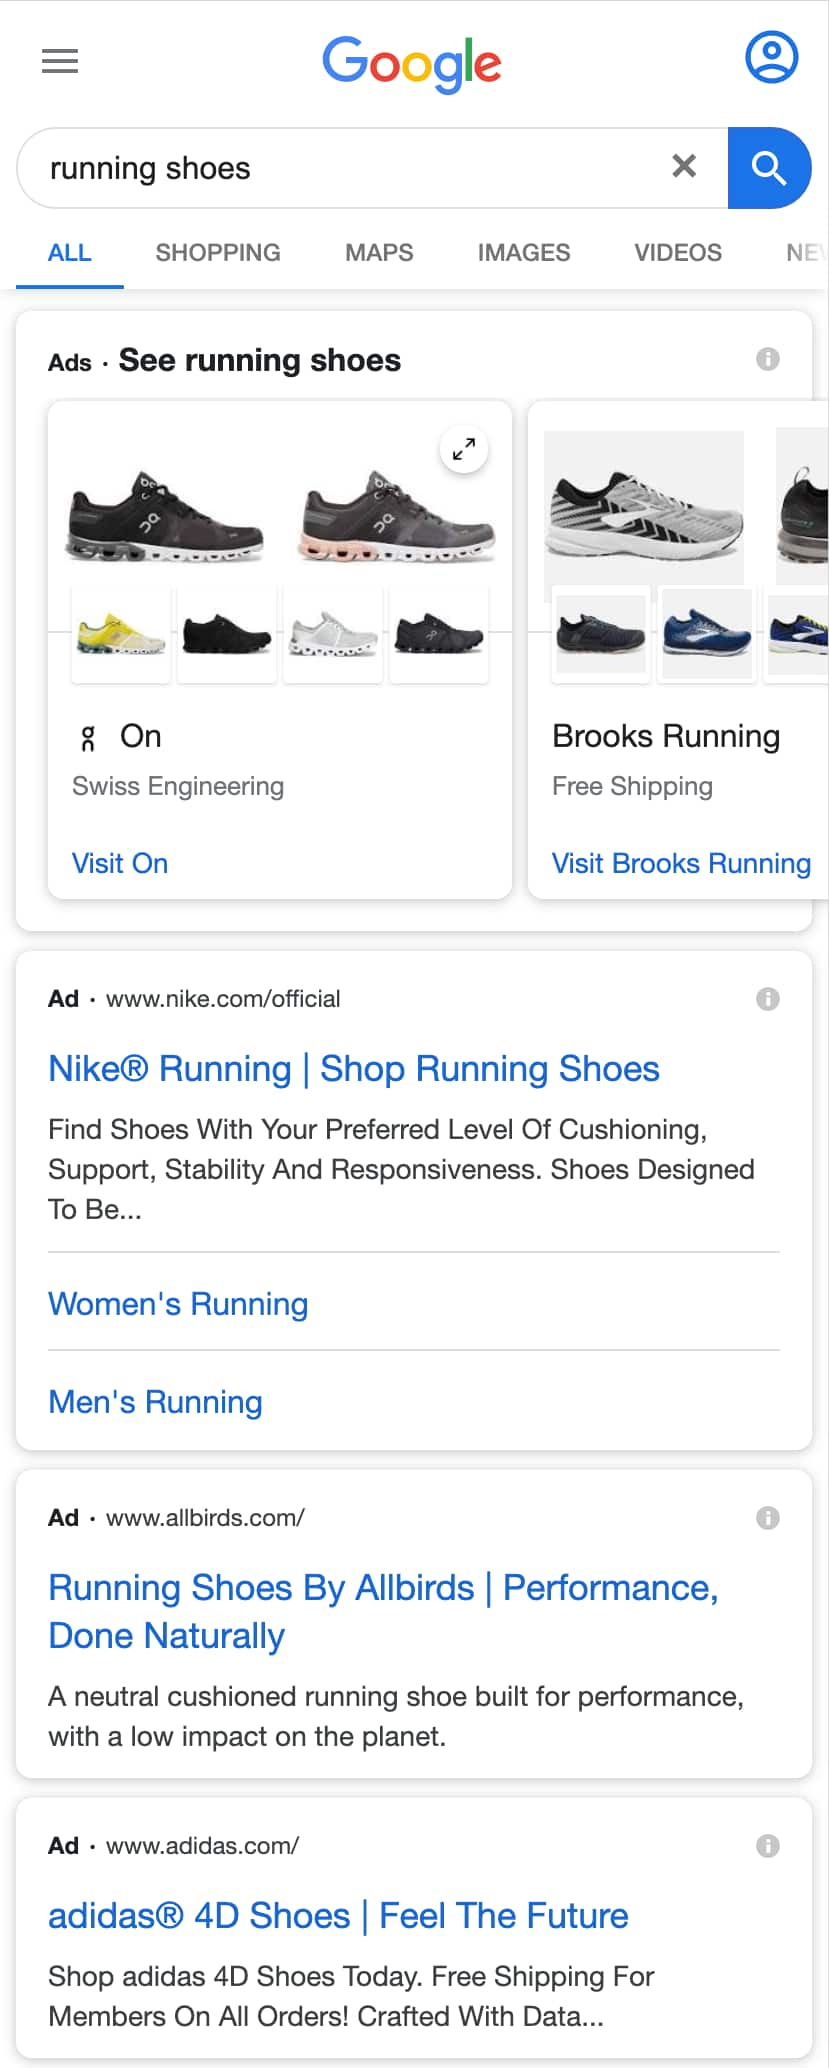 Head Of Google Ads To Run Search Move Concerns Seo Veterans About The Future Of Search